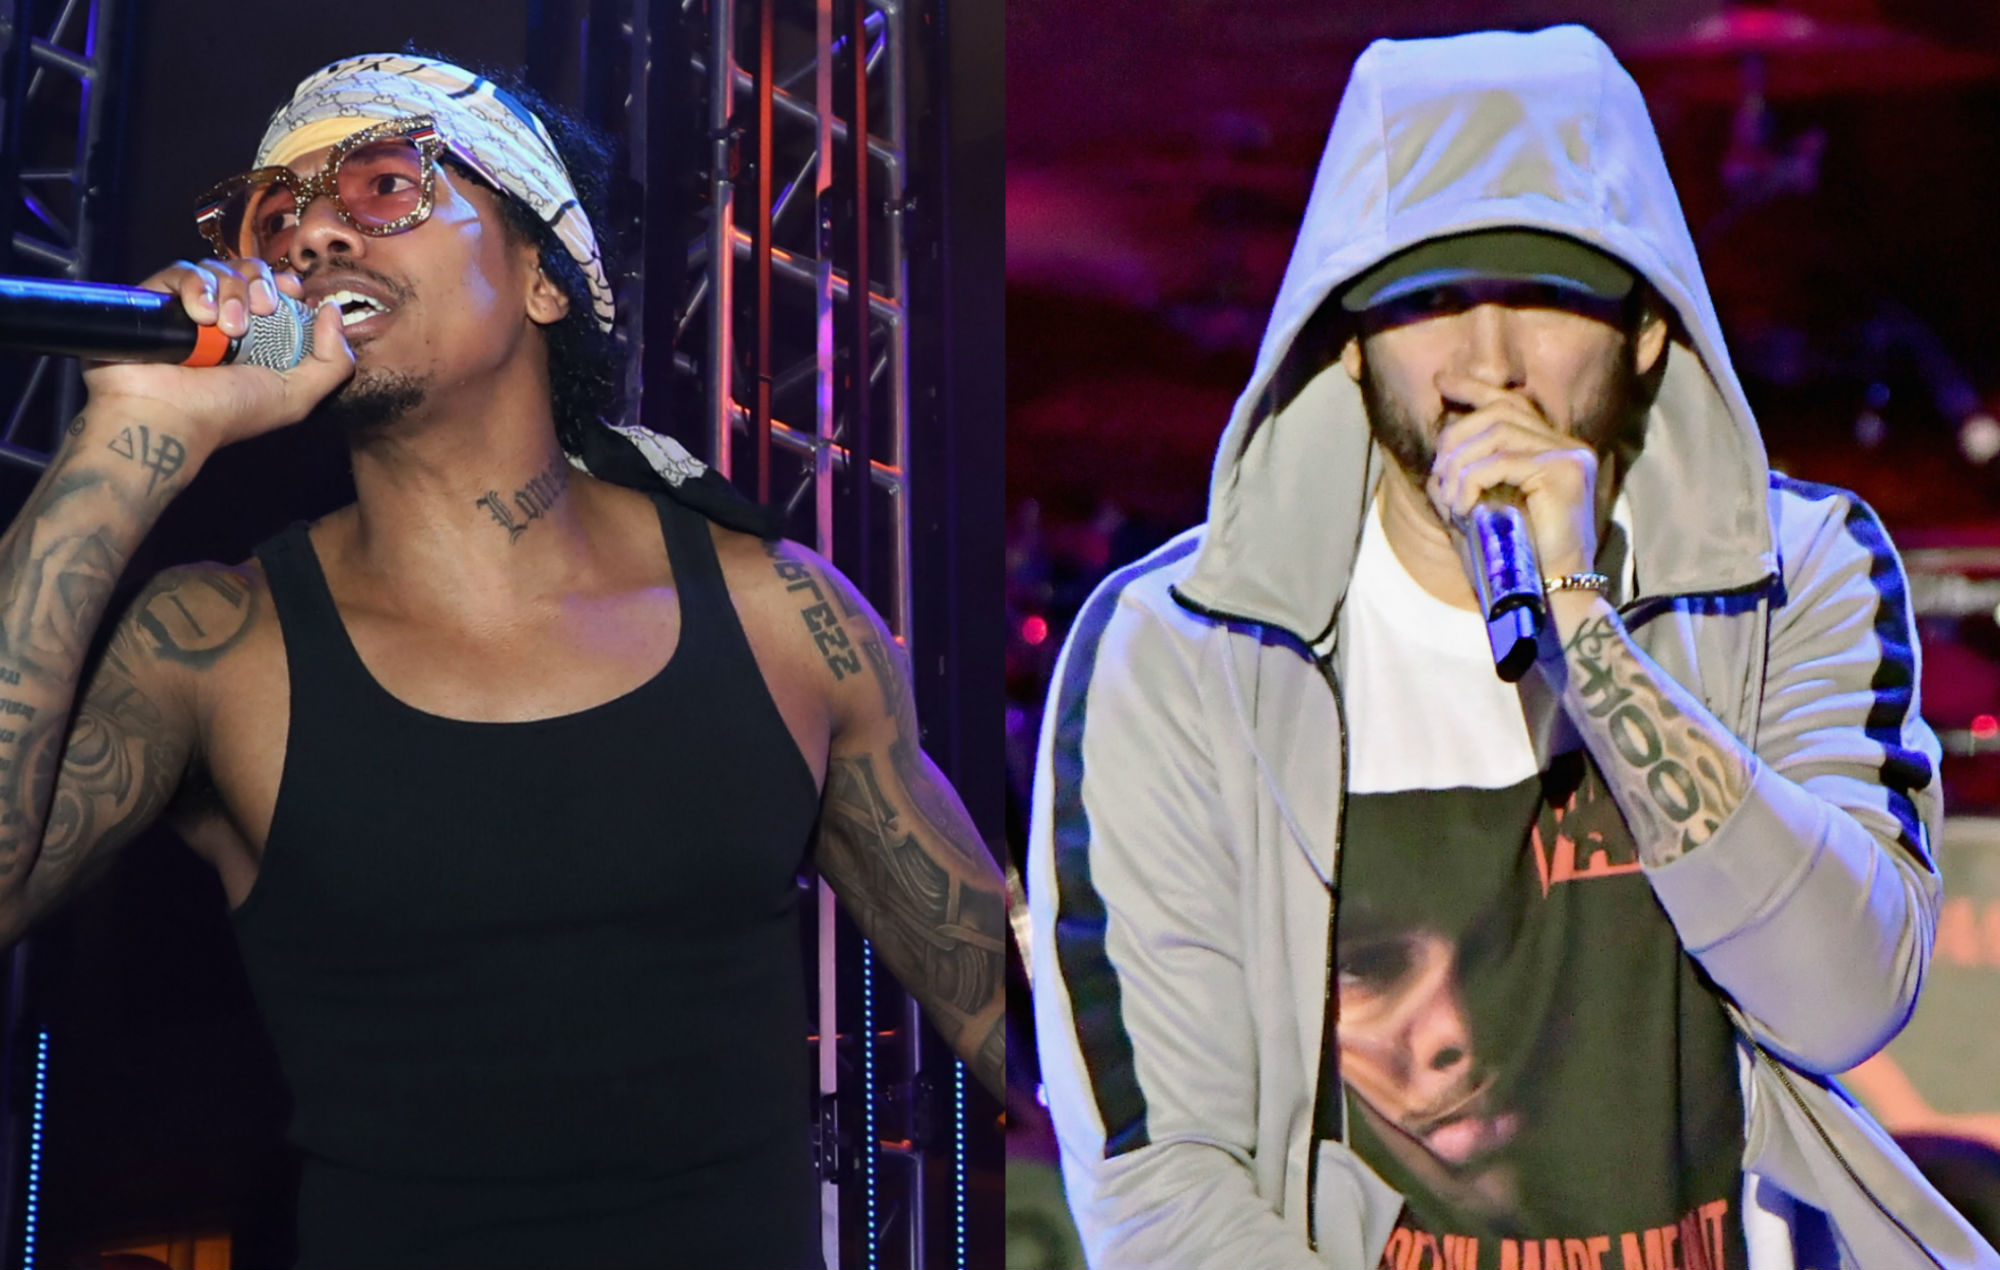 Nick Cannon targets Eminem's fans in 'Used to Look Up to You' diss song